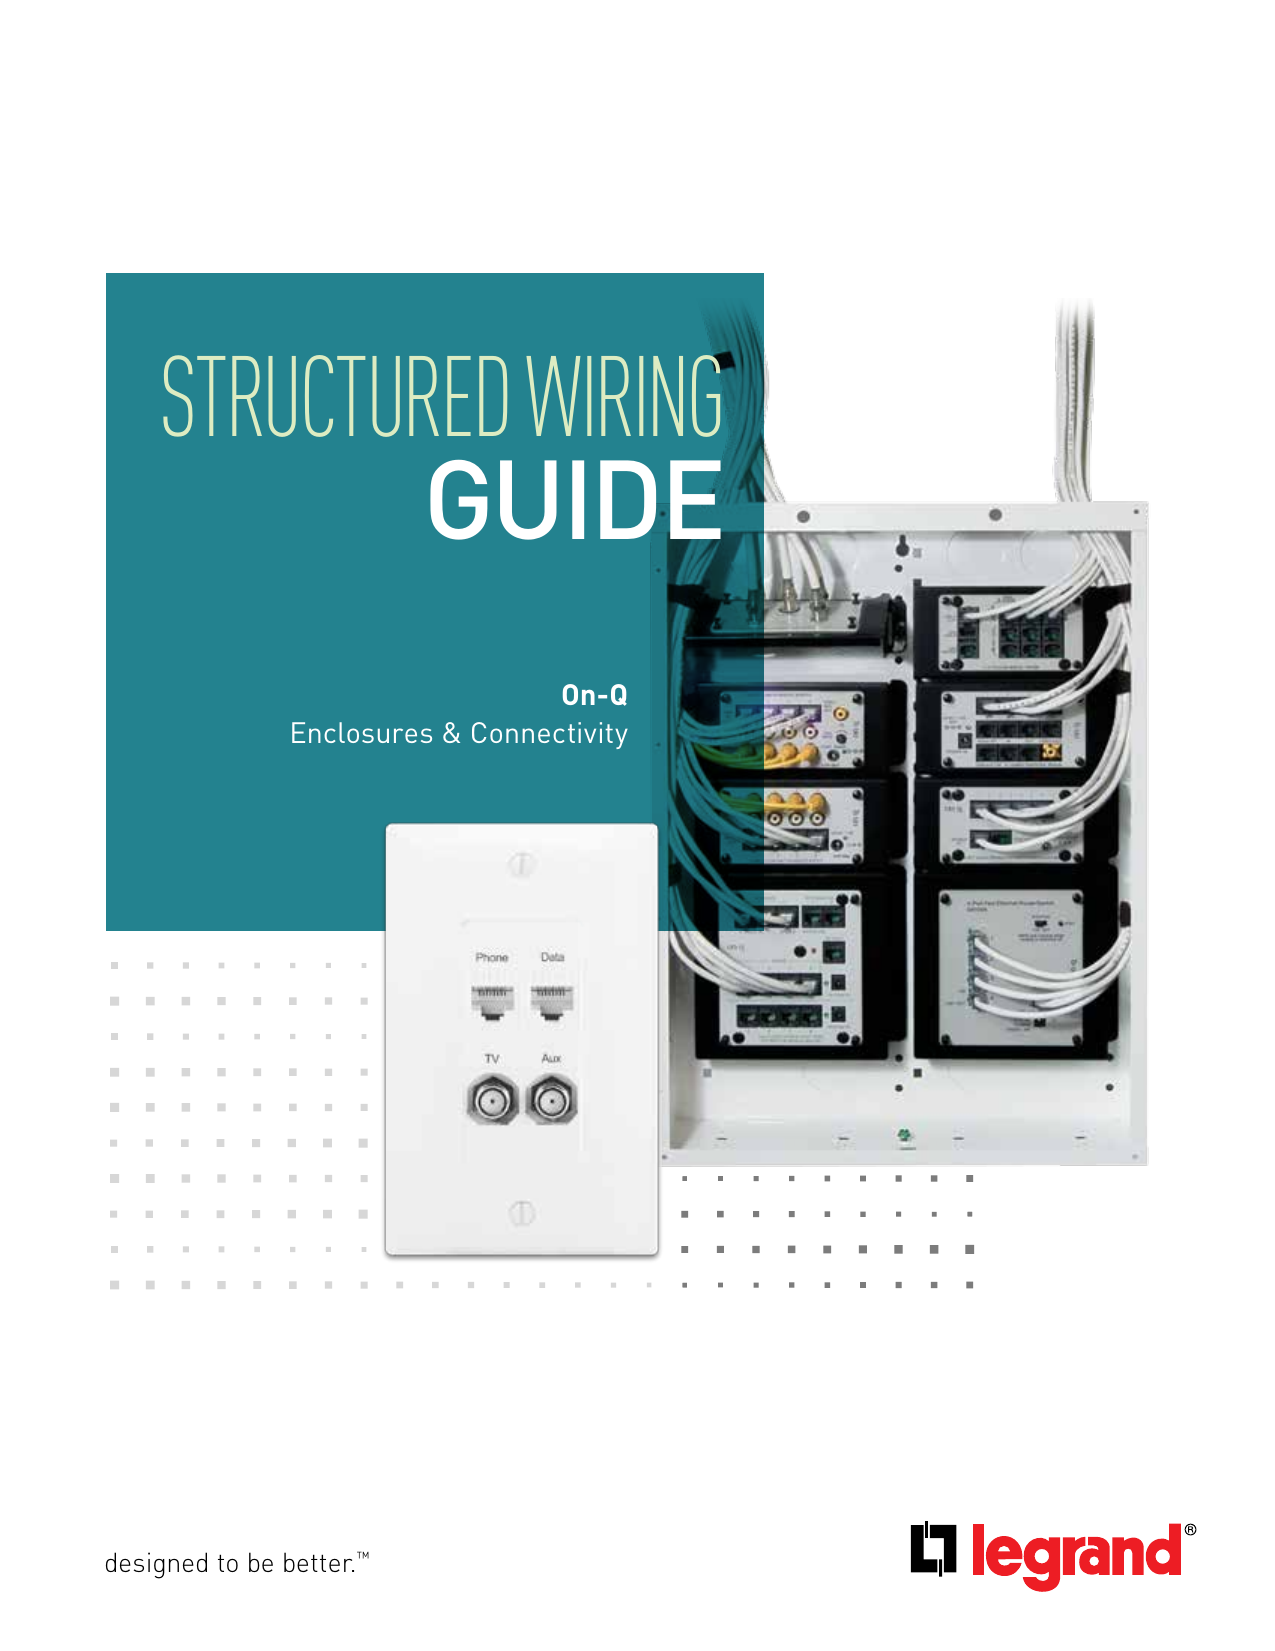 Structured Wiring Guide